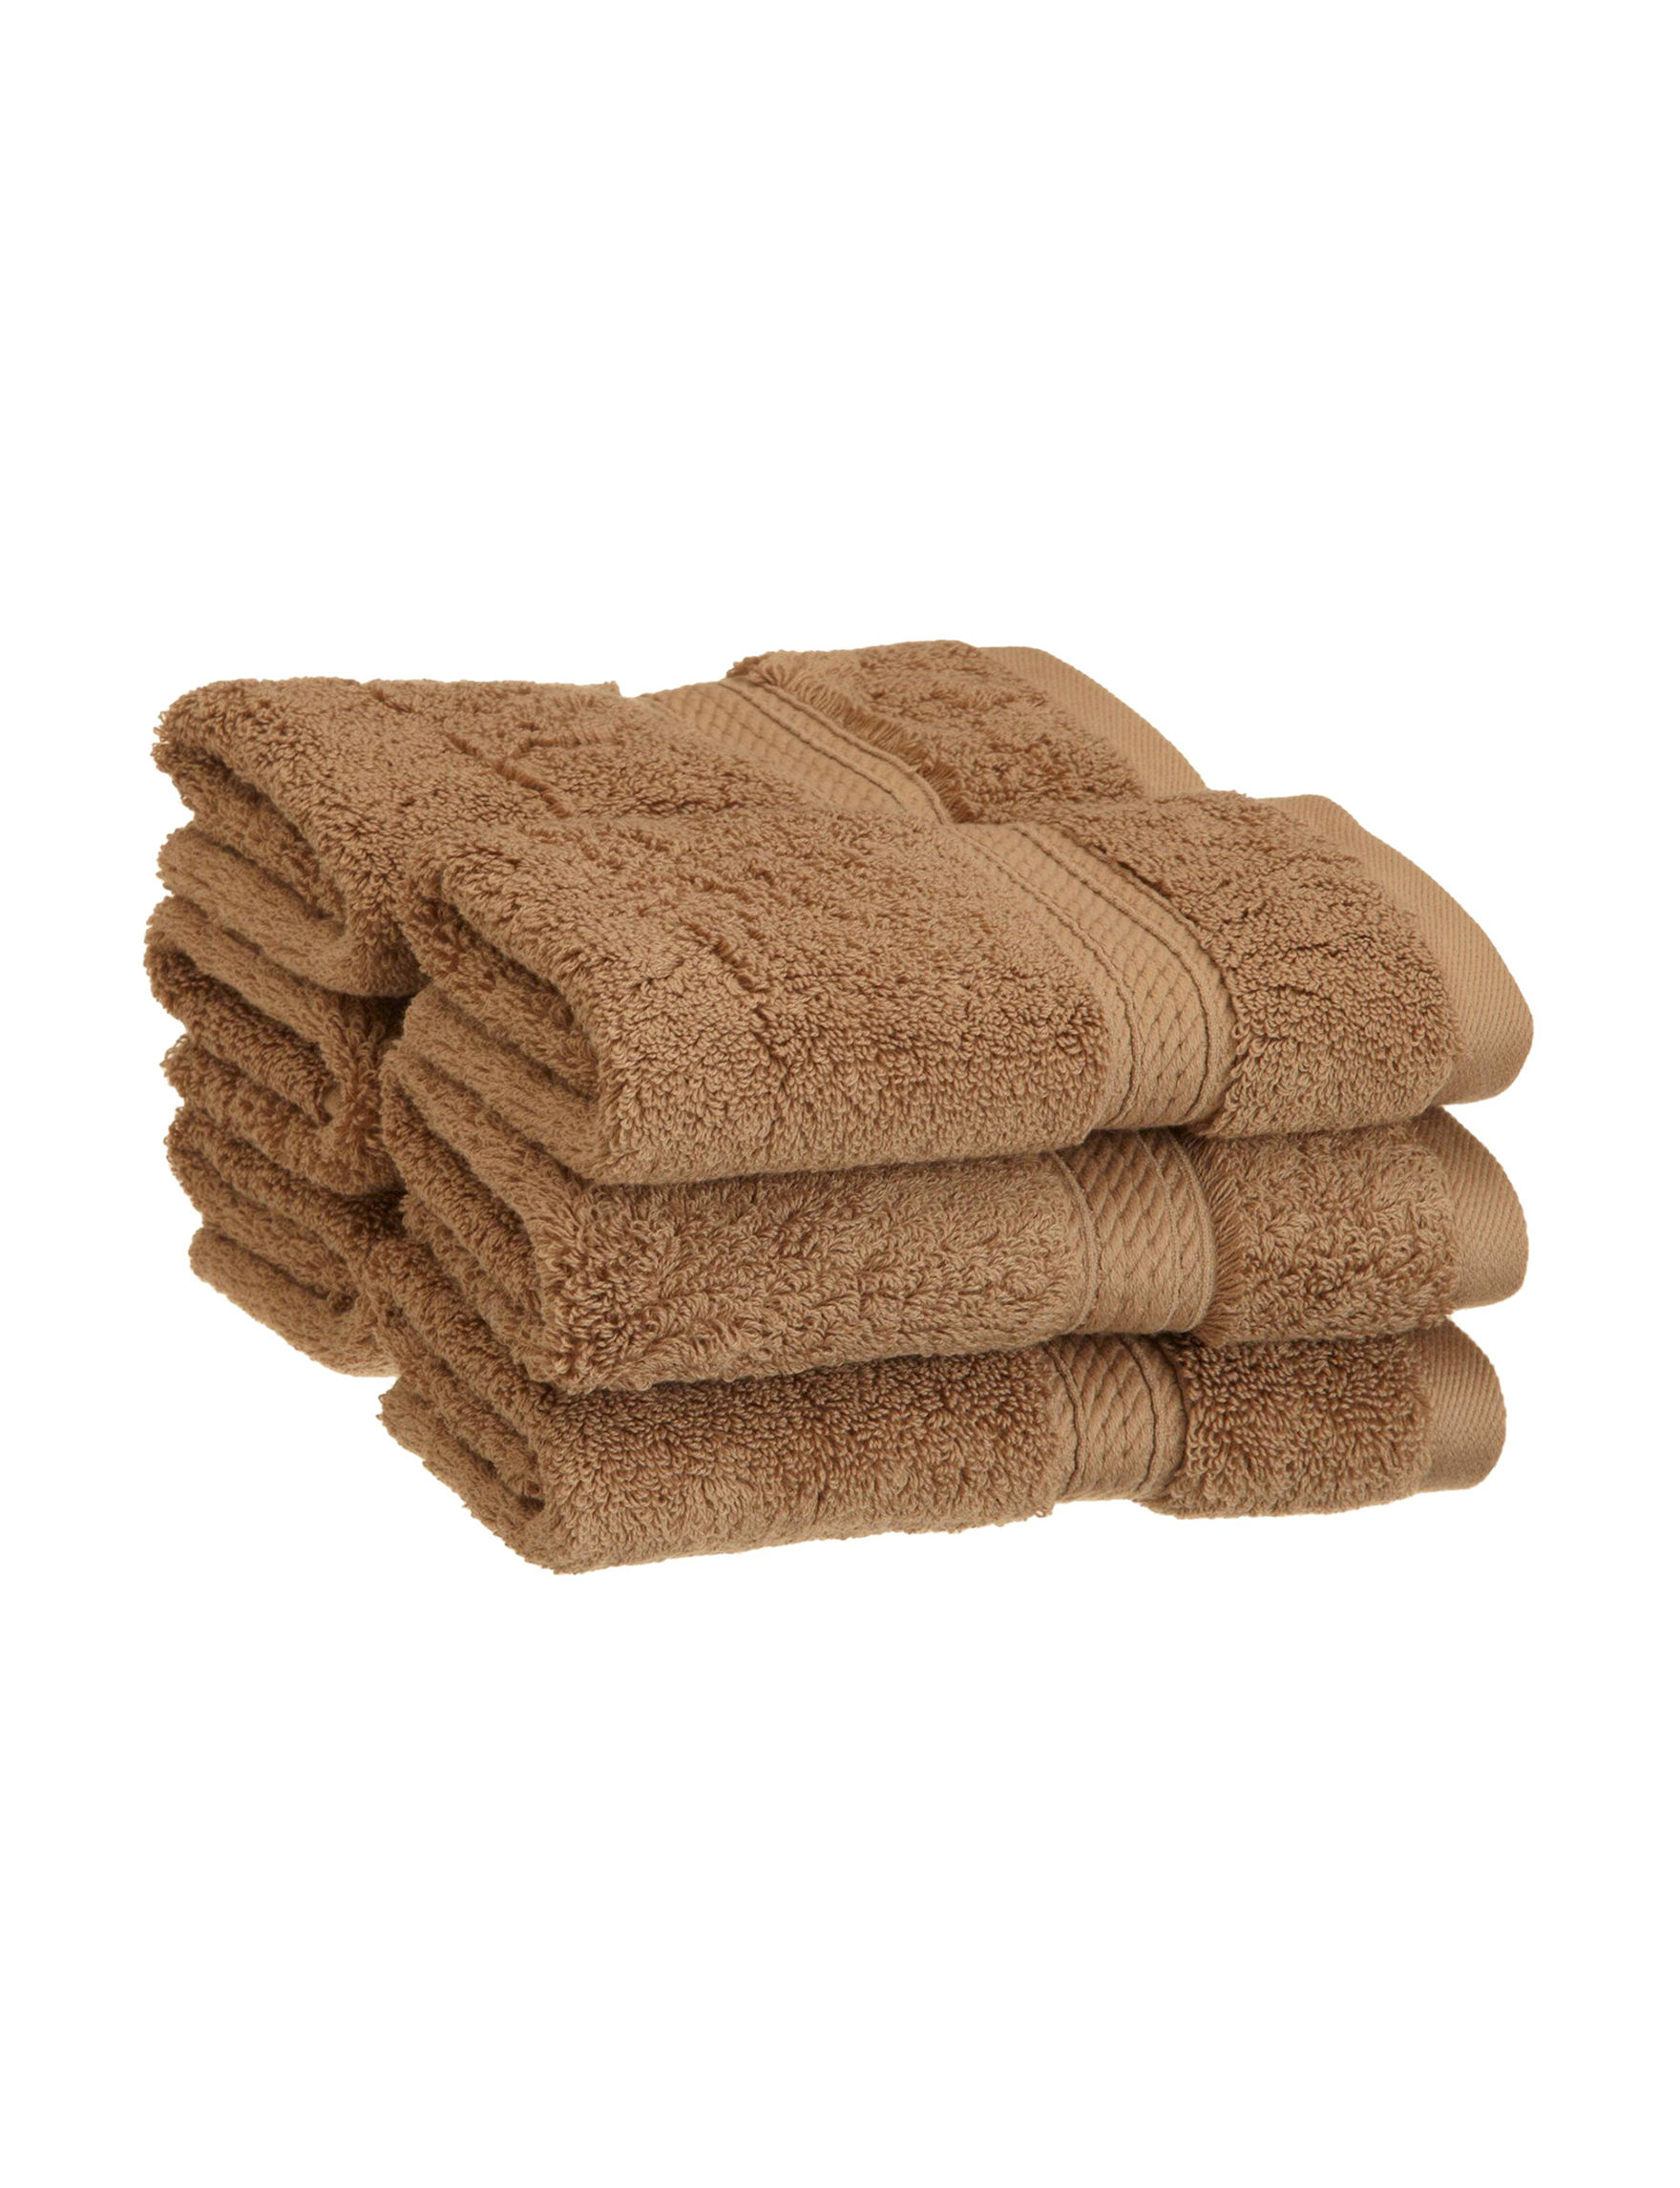 Superior Latte Towels